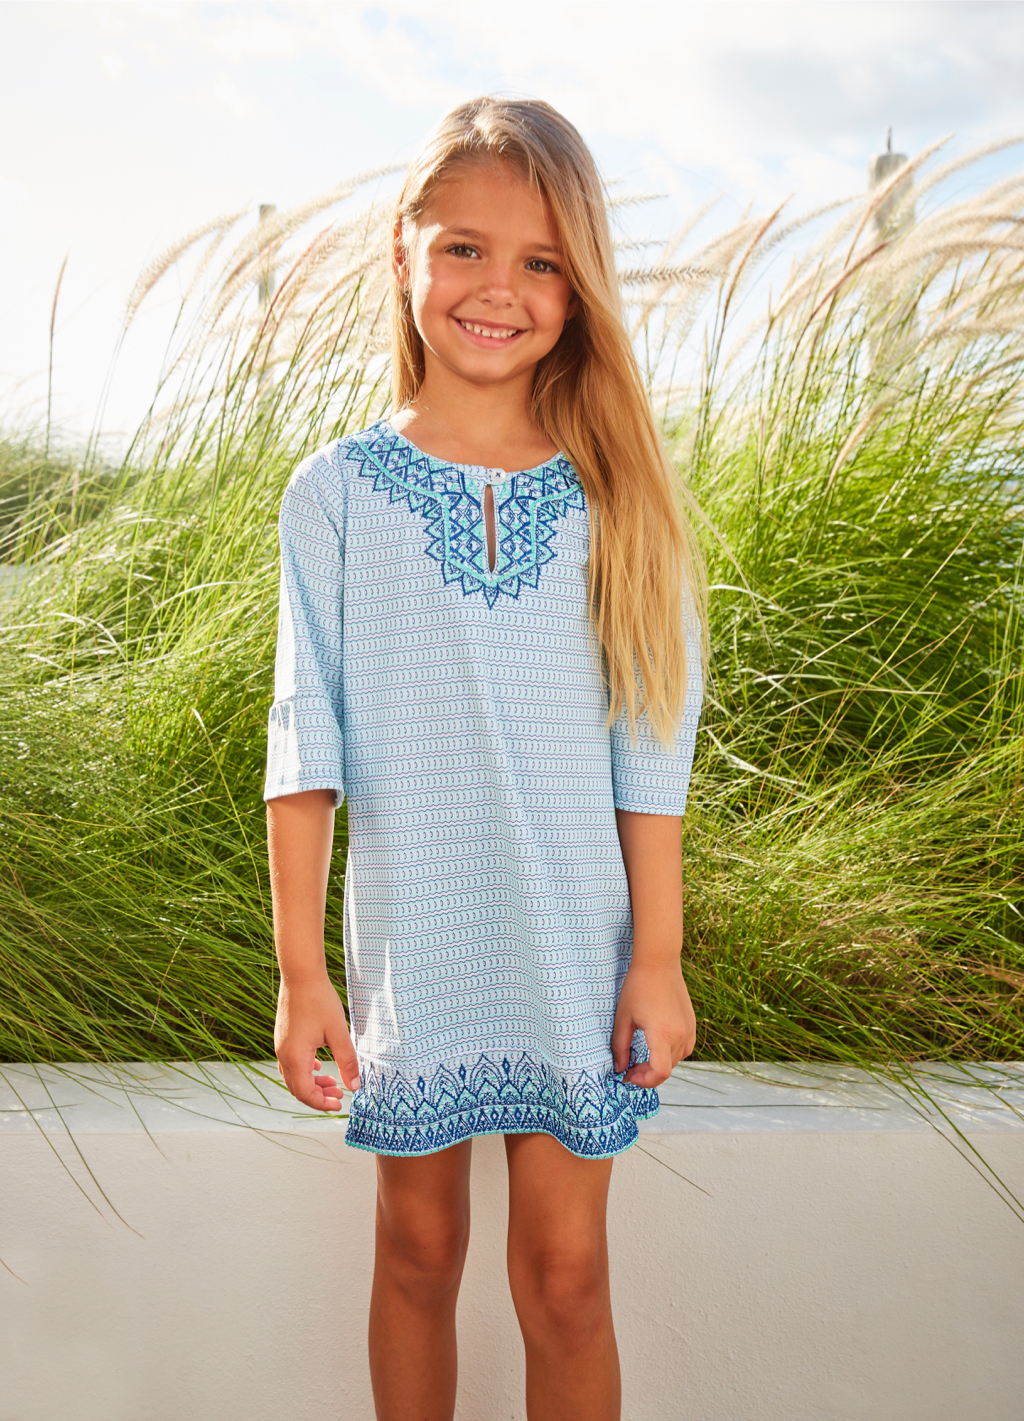 Little-Girls-Swimsuit-and-Cover-Up-Sets_Cabana-Life_Bali-Seas-Swimsuit-&-Cover-Up-Set-1.jpg